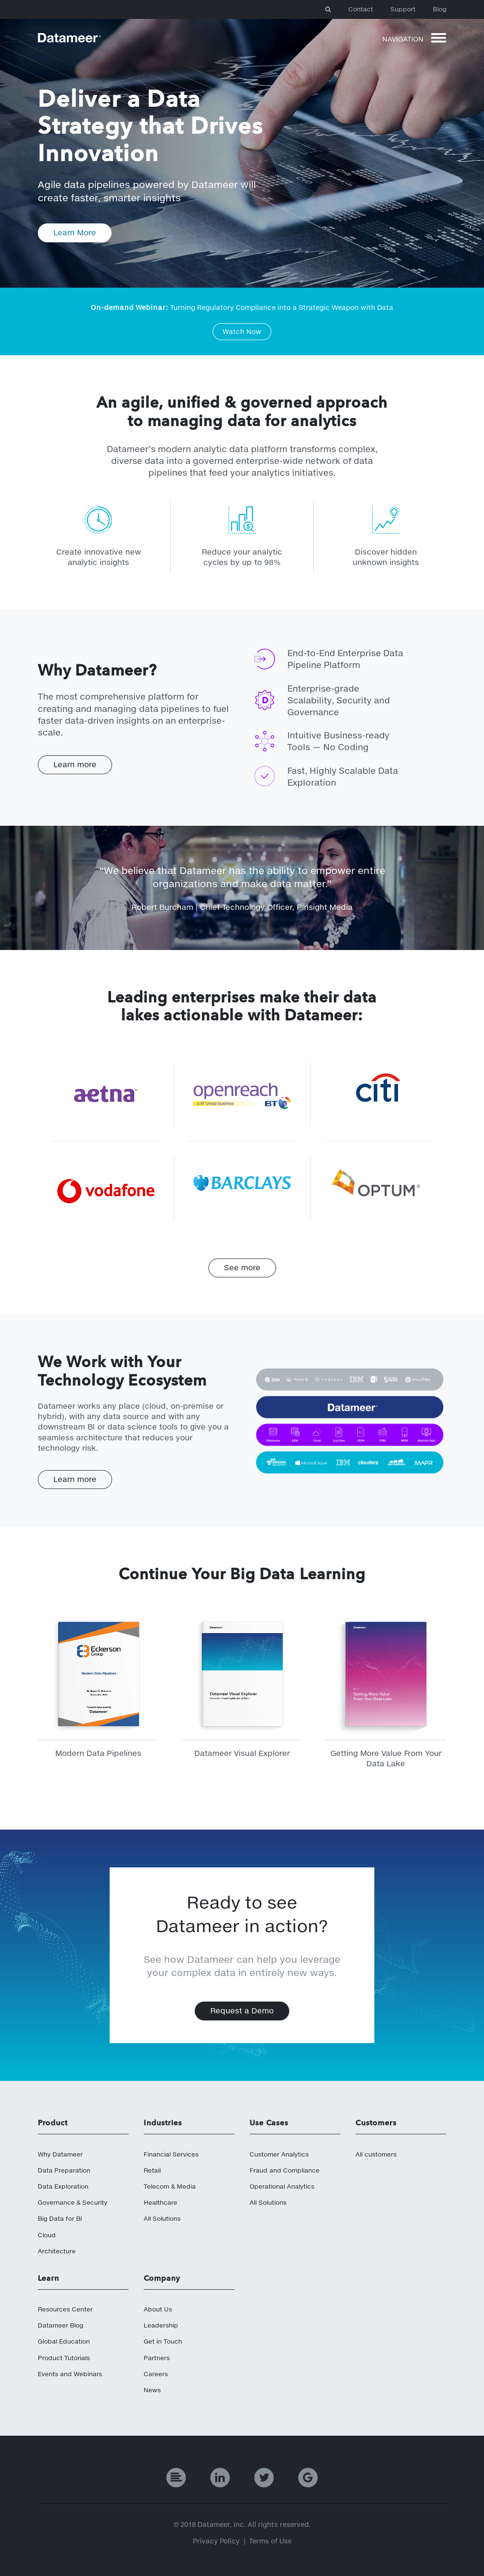 Datameer Competitors, Revenue and Employees - Owler Company